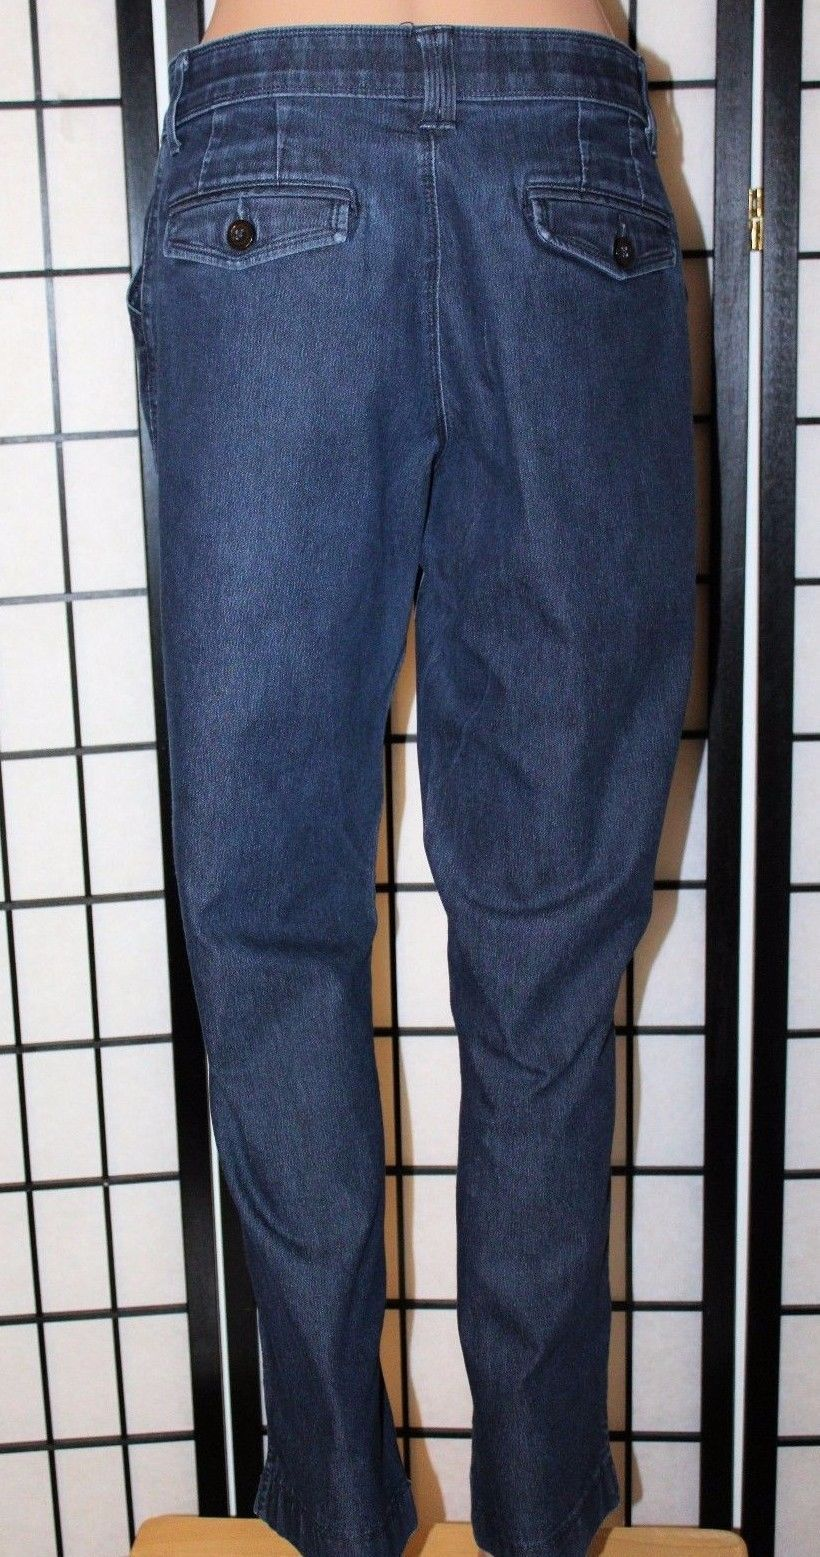 e45991ed S l1600. S l1600. Previous. LEE Sinfully Soft Women's Size 10 Short Boot  Cut Stretch Jeans 29